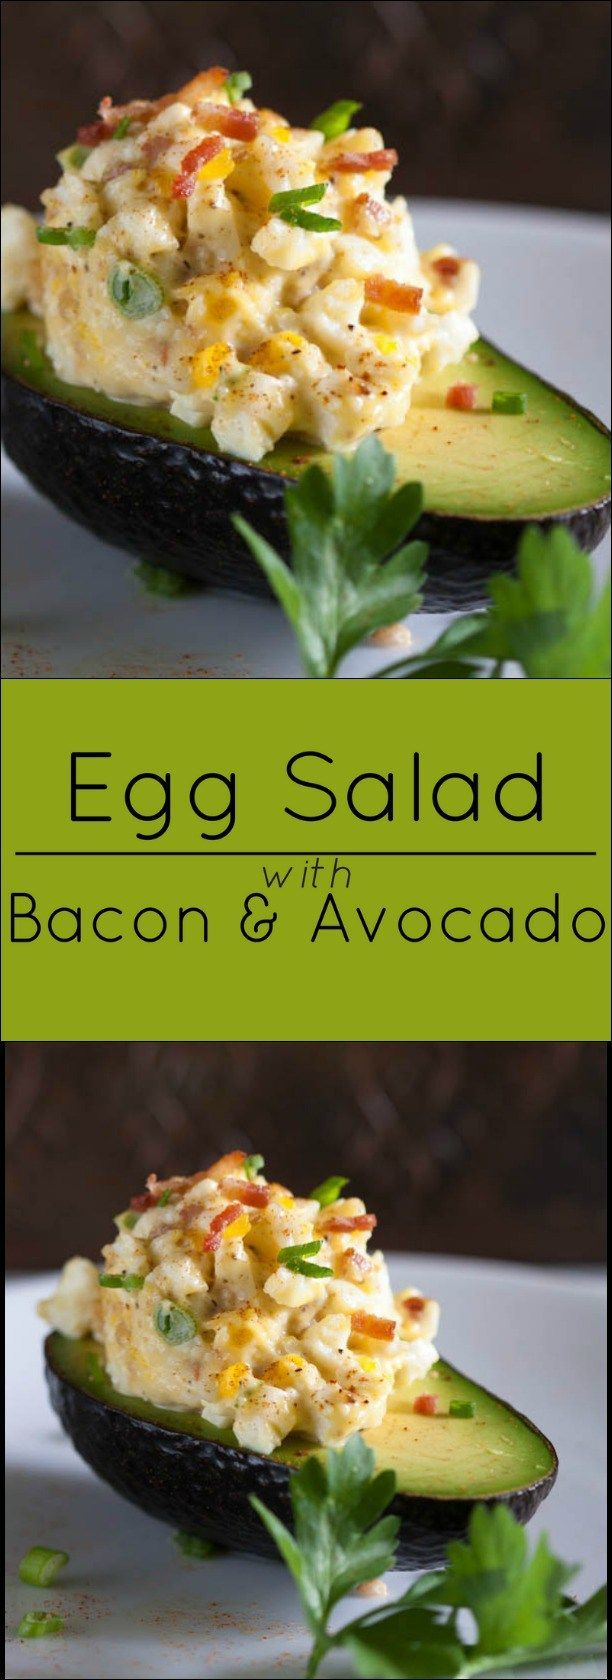 Egg Salad with Bacon and Avocado. Gluten free and low-carb.